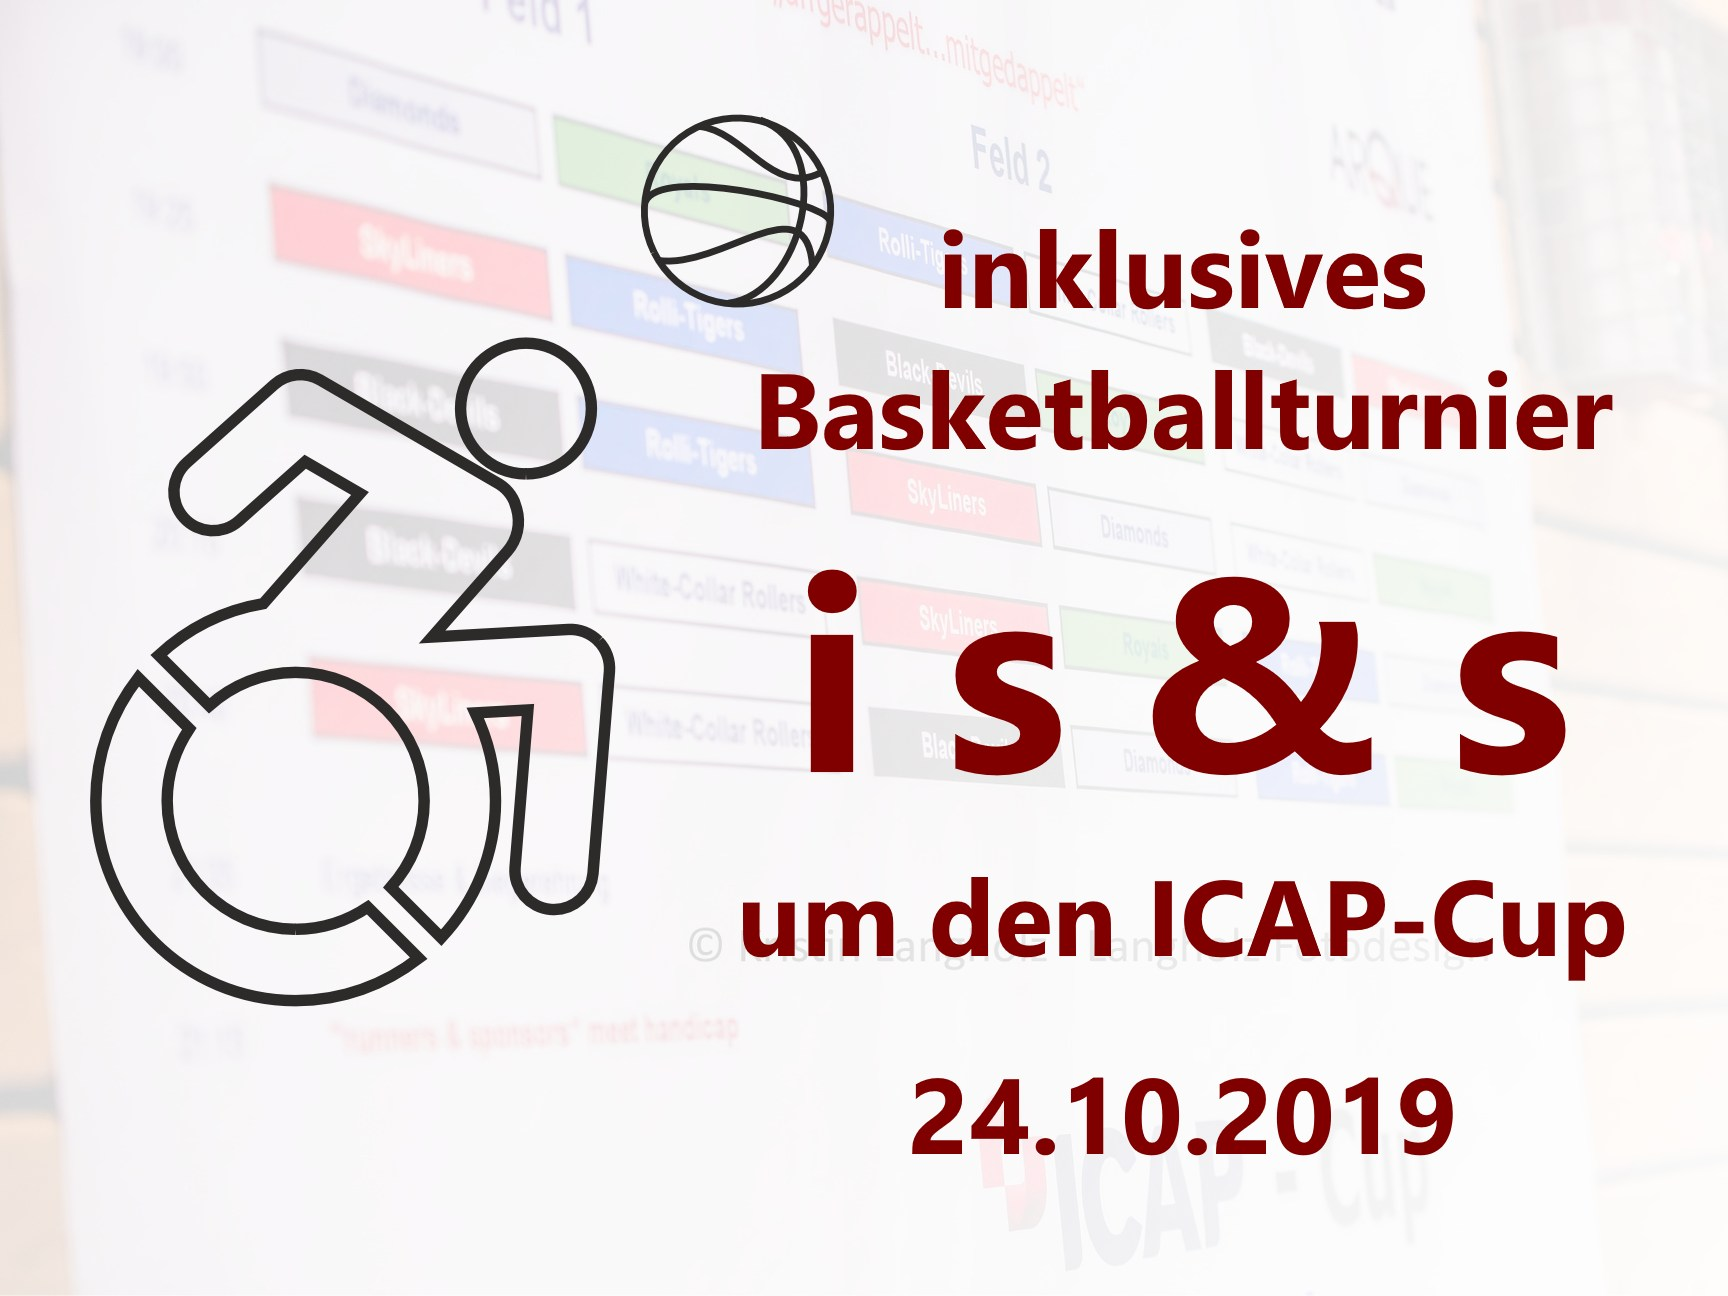 iss Werbung mit accessible icon 24.10.2019